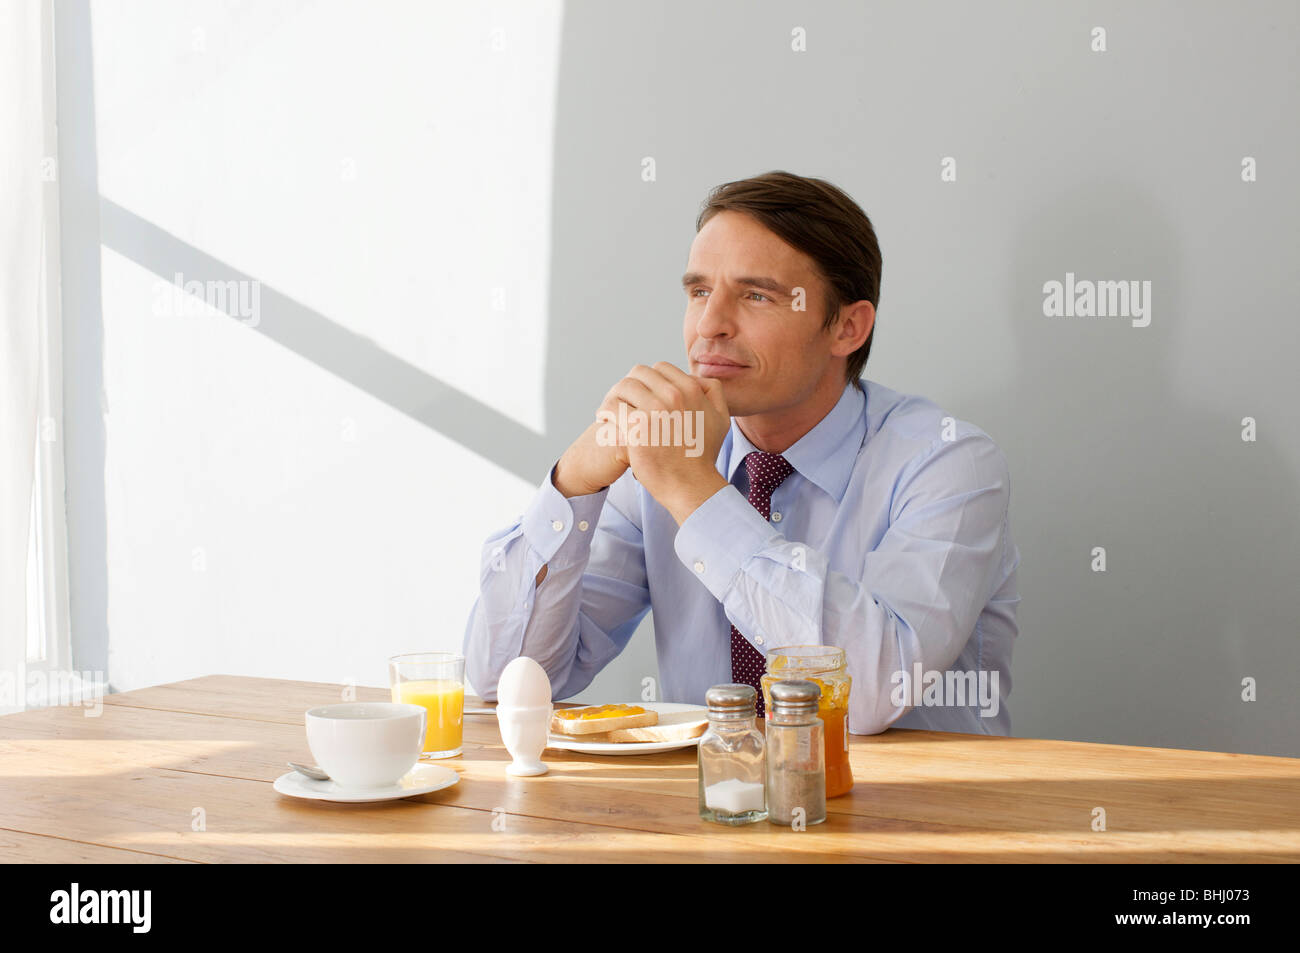 man in thoughts after breakfast - Stock Image